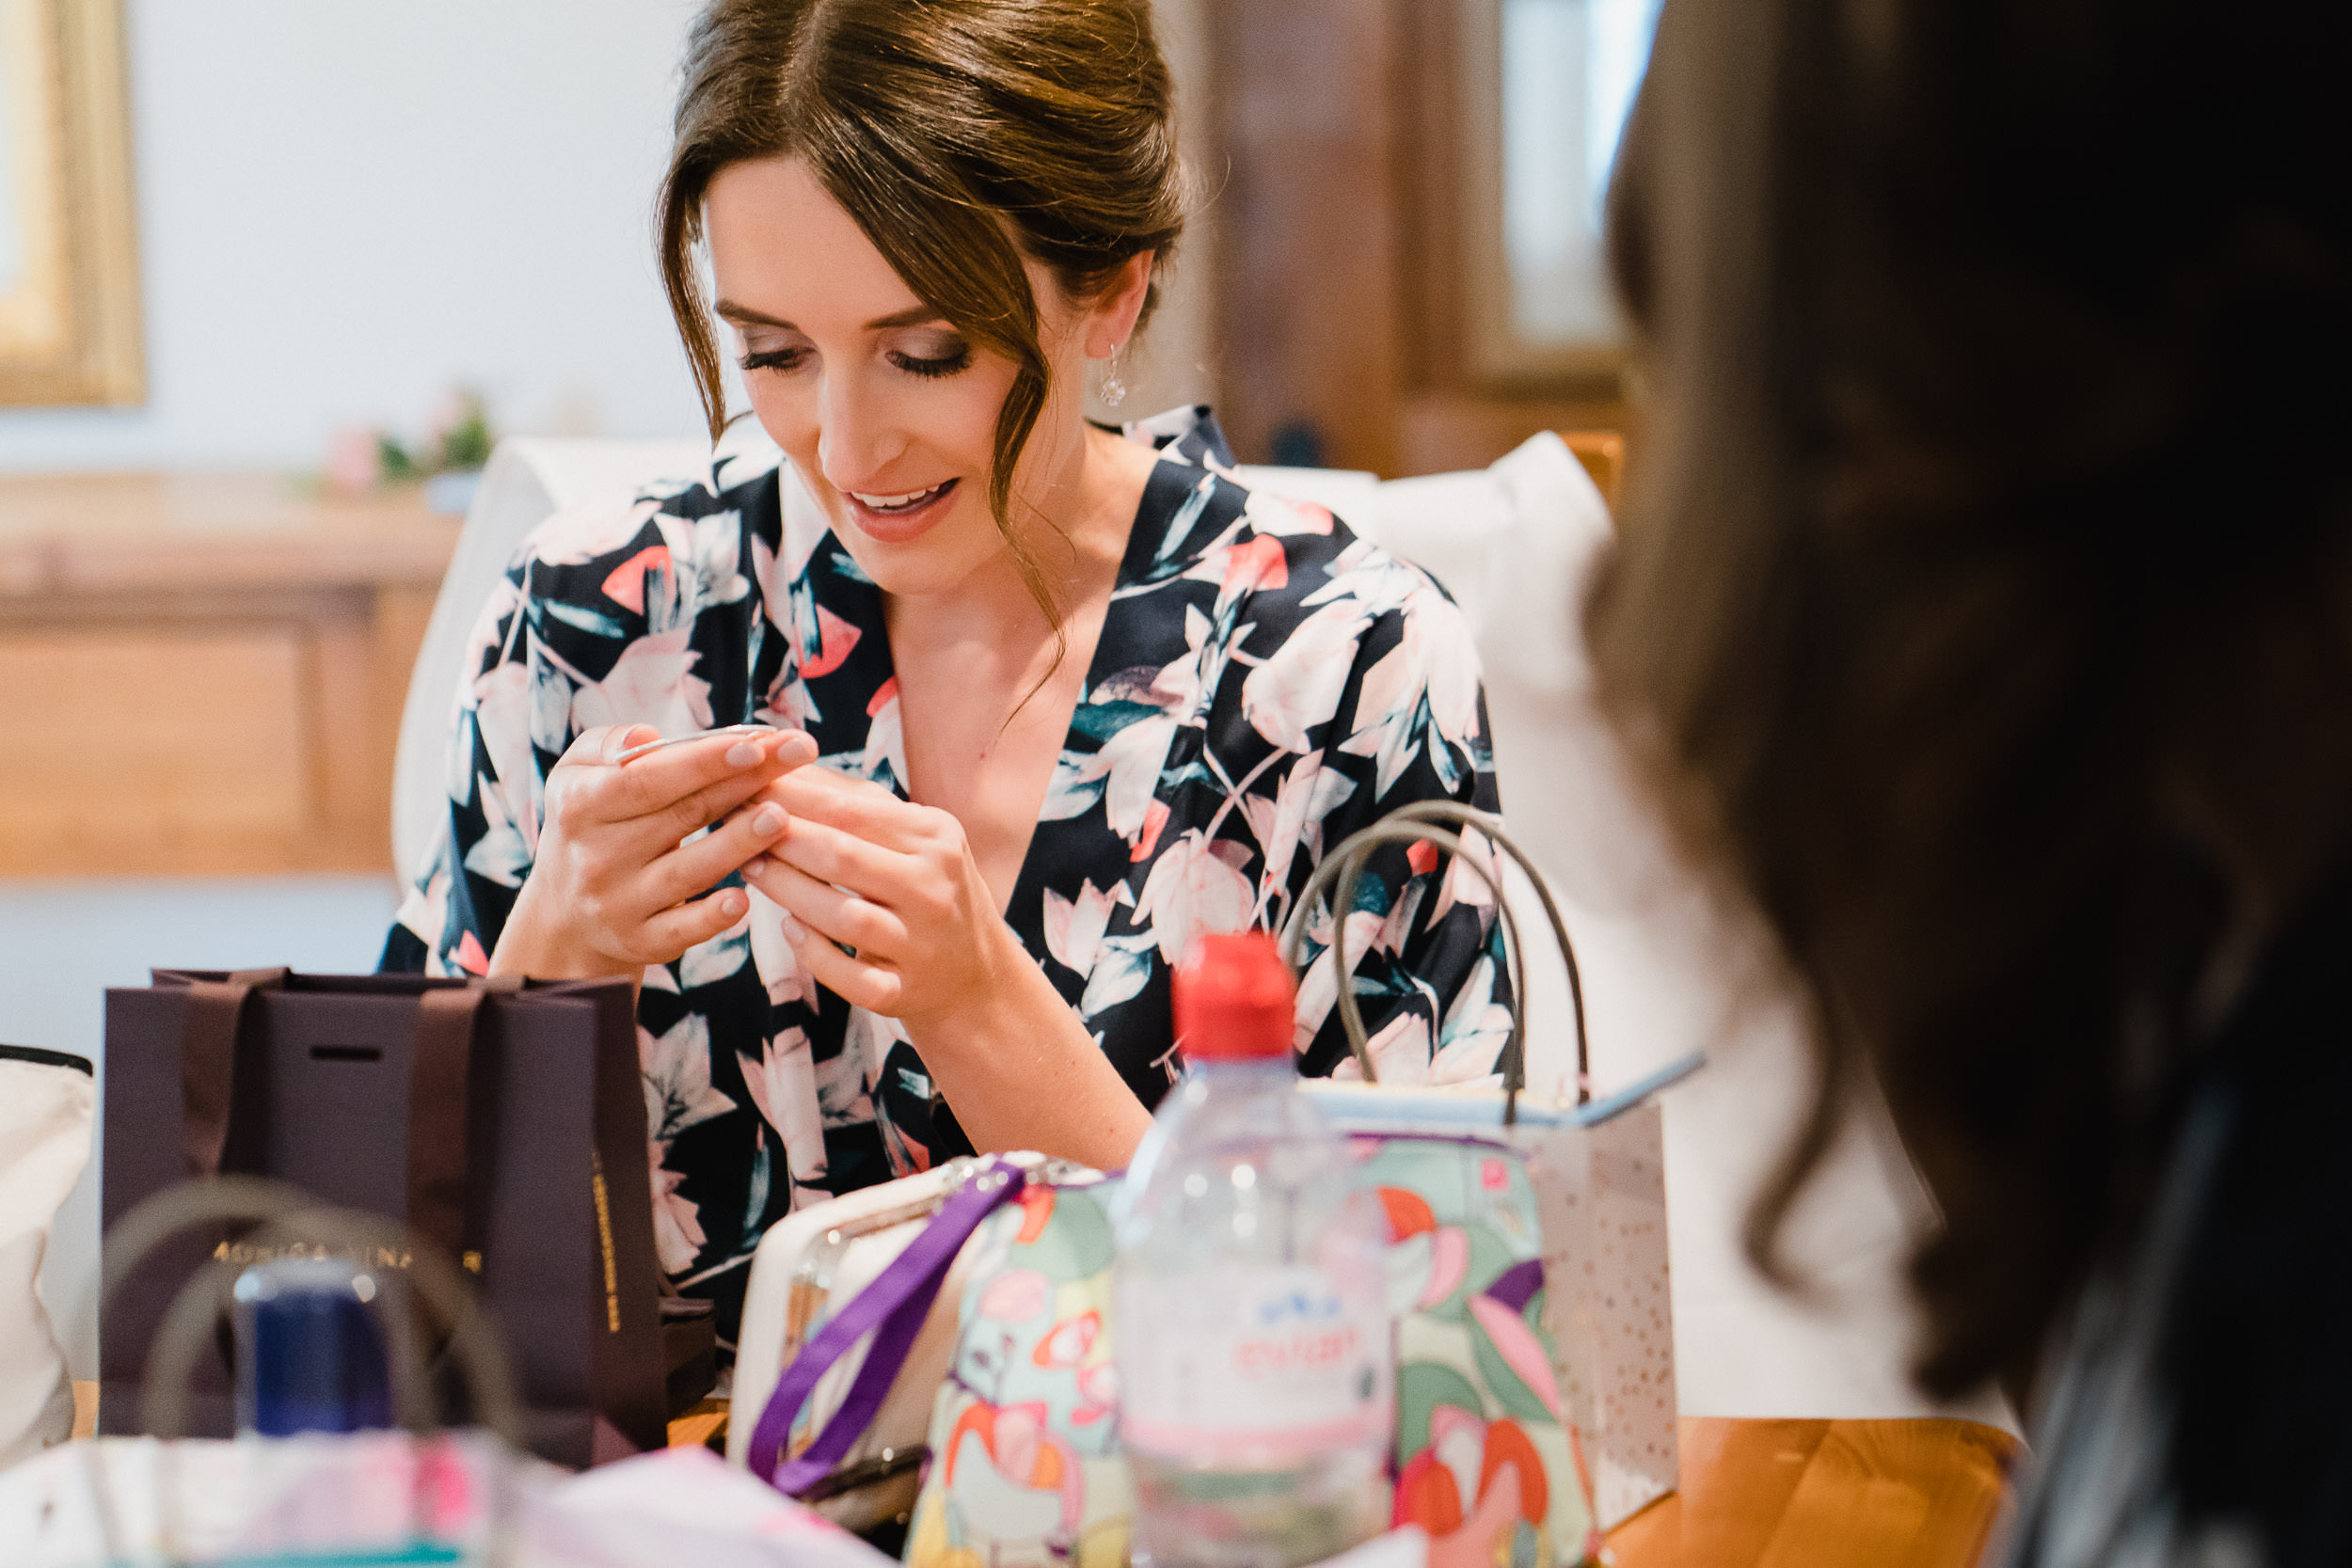 Orchardleigh Estate Wedding - Bride opening presents during Bridal Prep